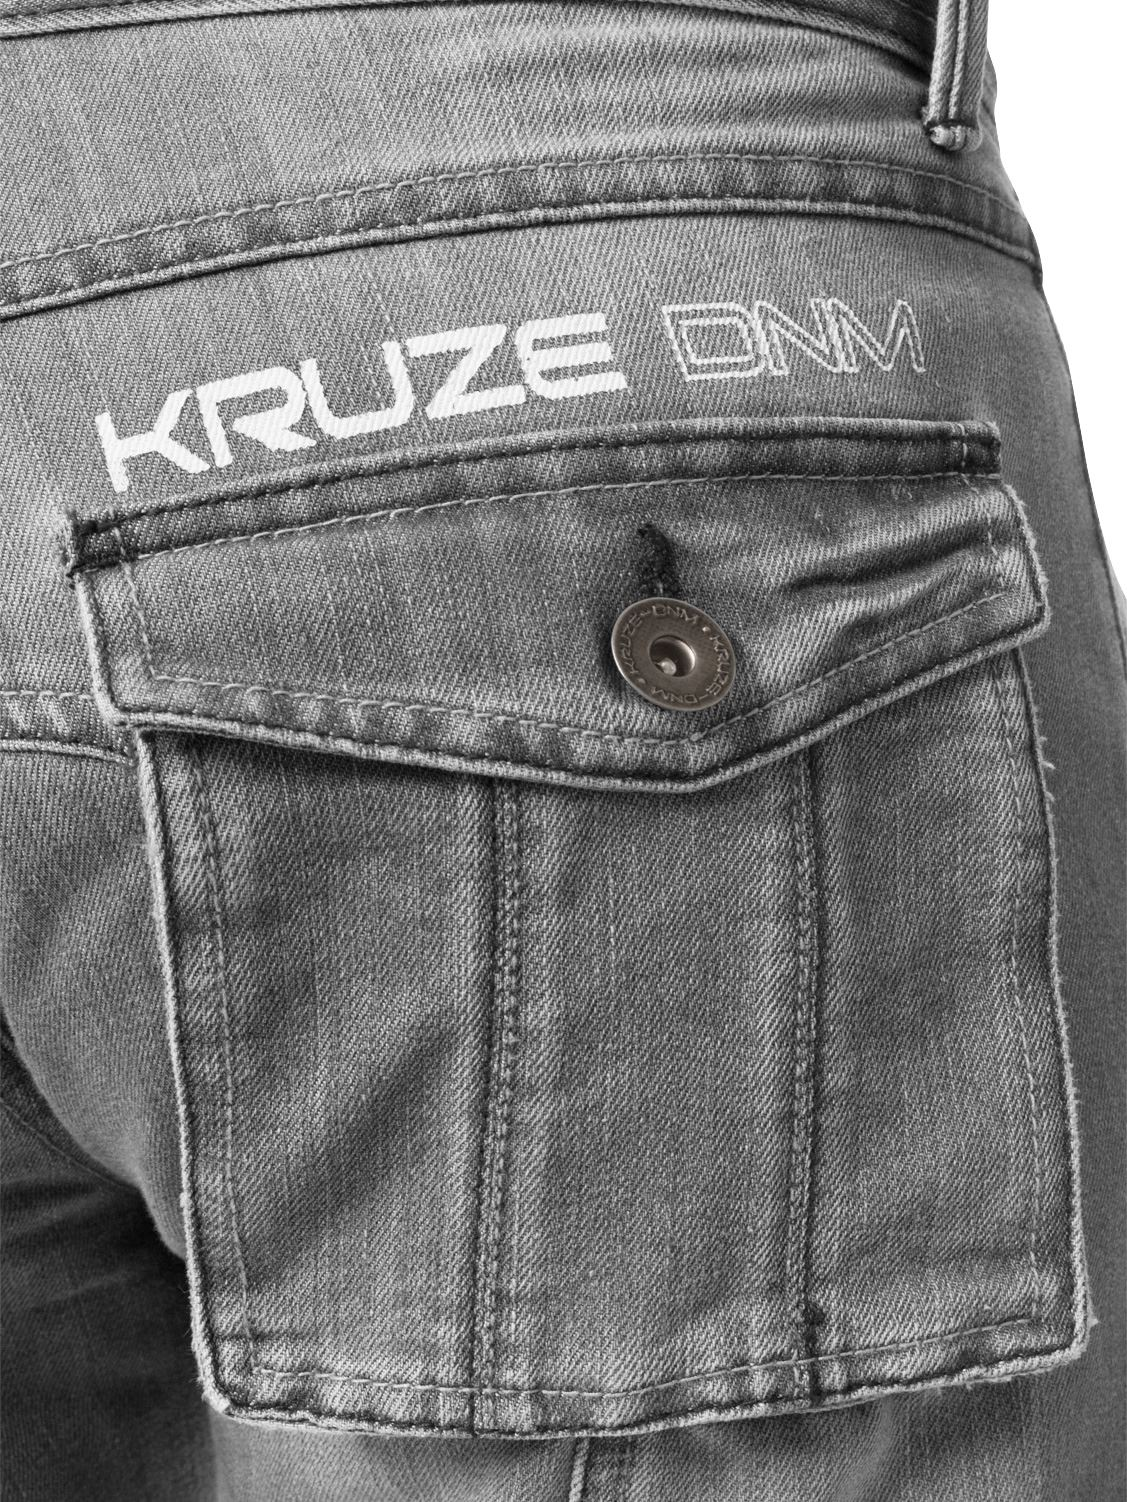 KRUZE-Mens-Combat-Jeans-Casual-Cargo-Work-Pants-Denim-Trousers-All-Waist-Sizes thumbnail 32